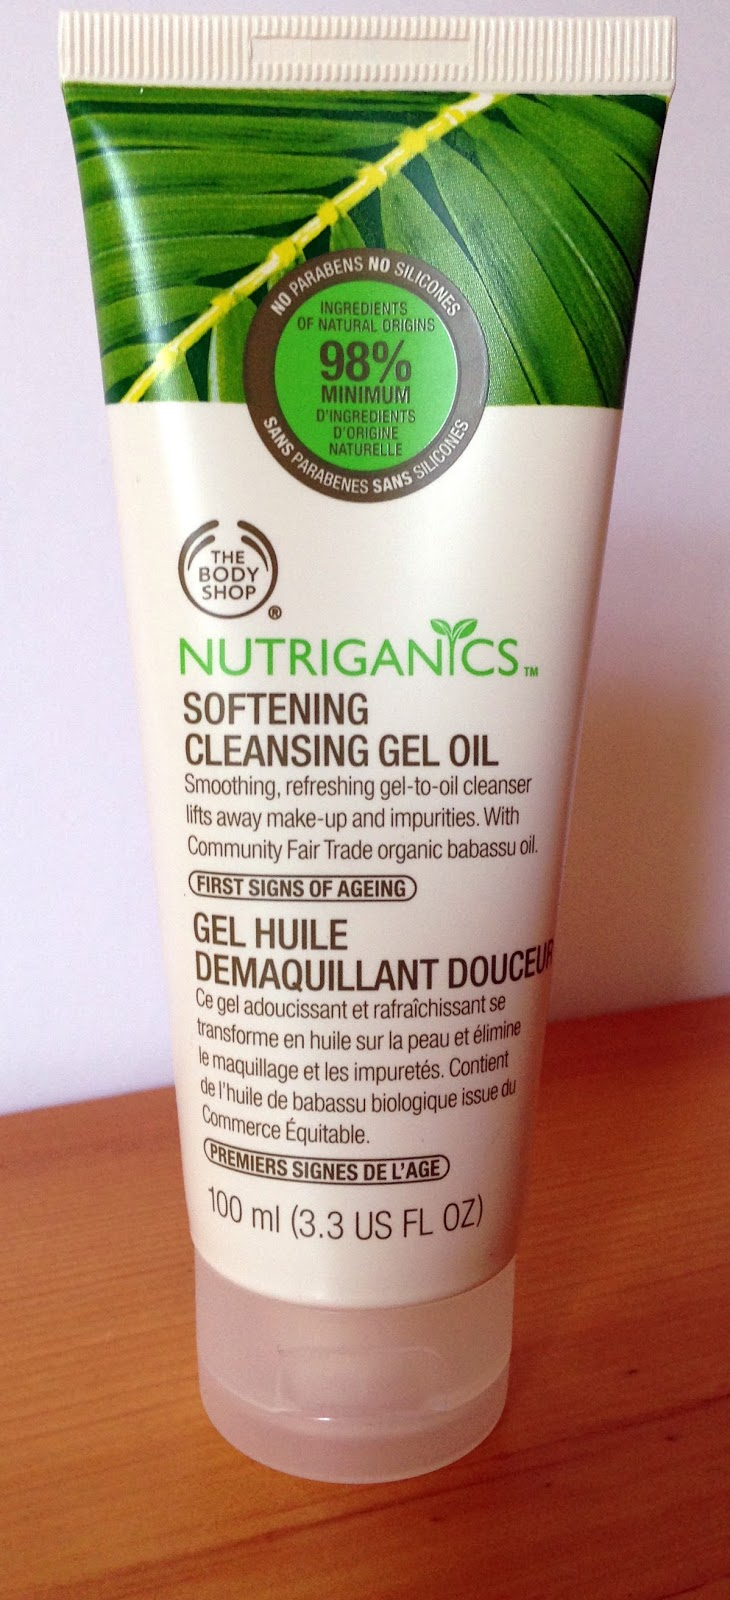 Body Shop Nutriganics Softening Cleansing Gel Oil